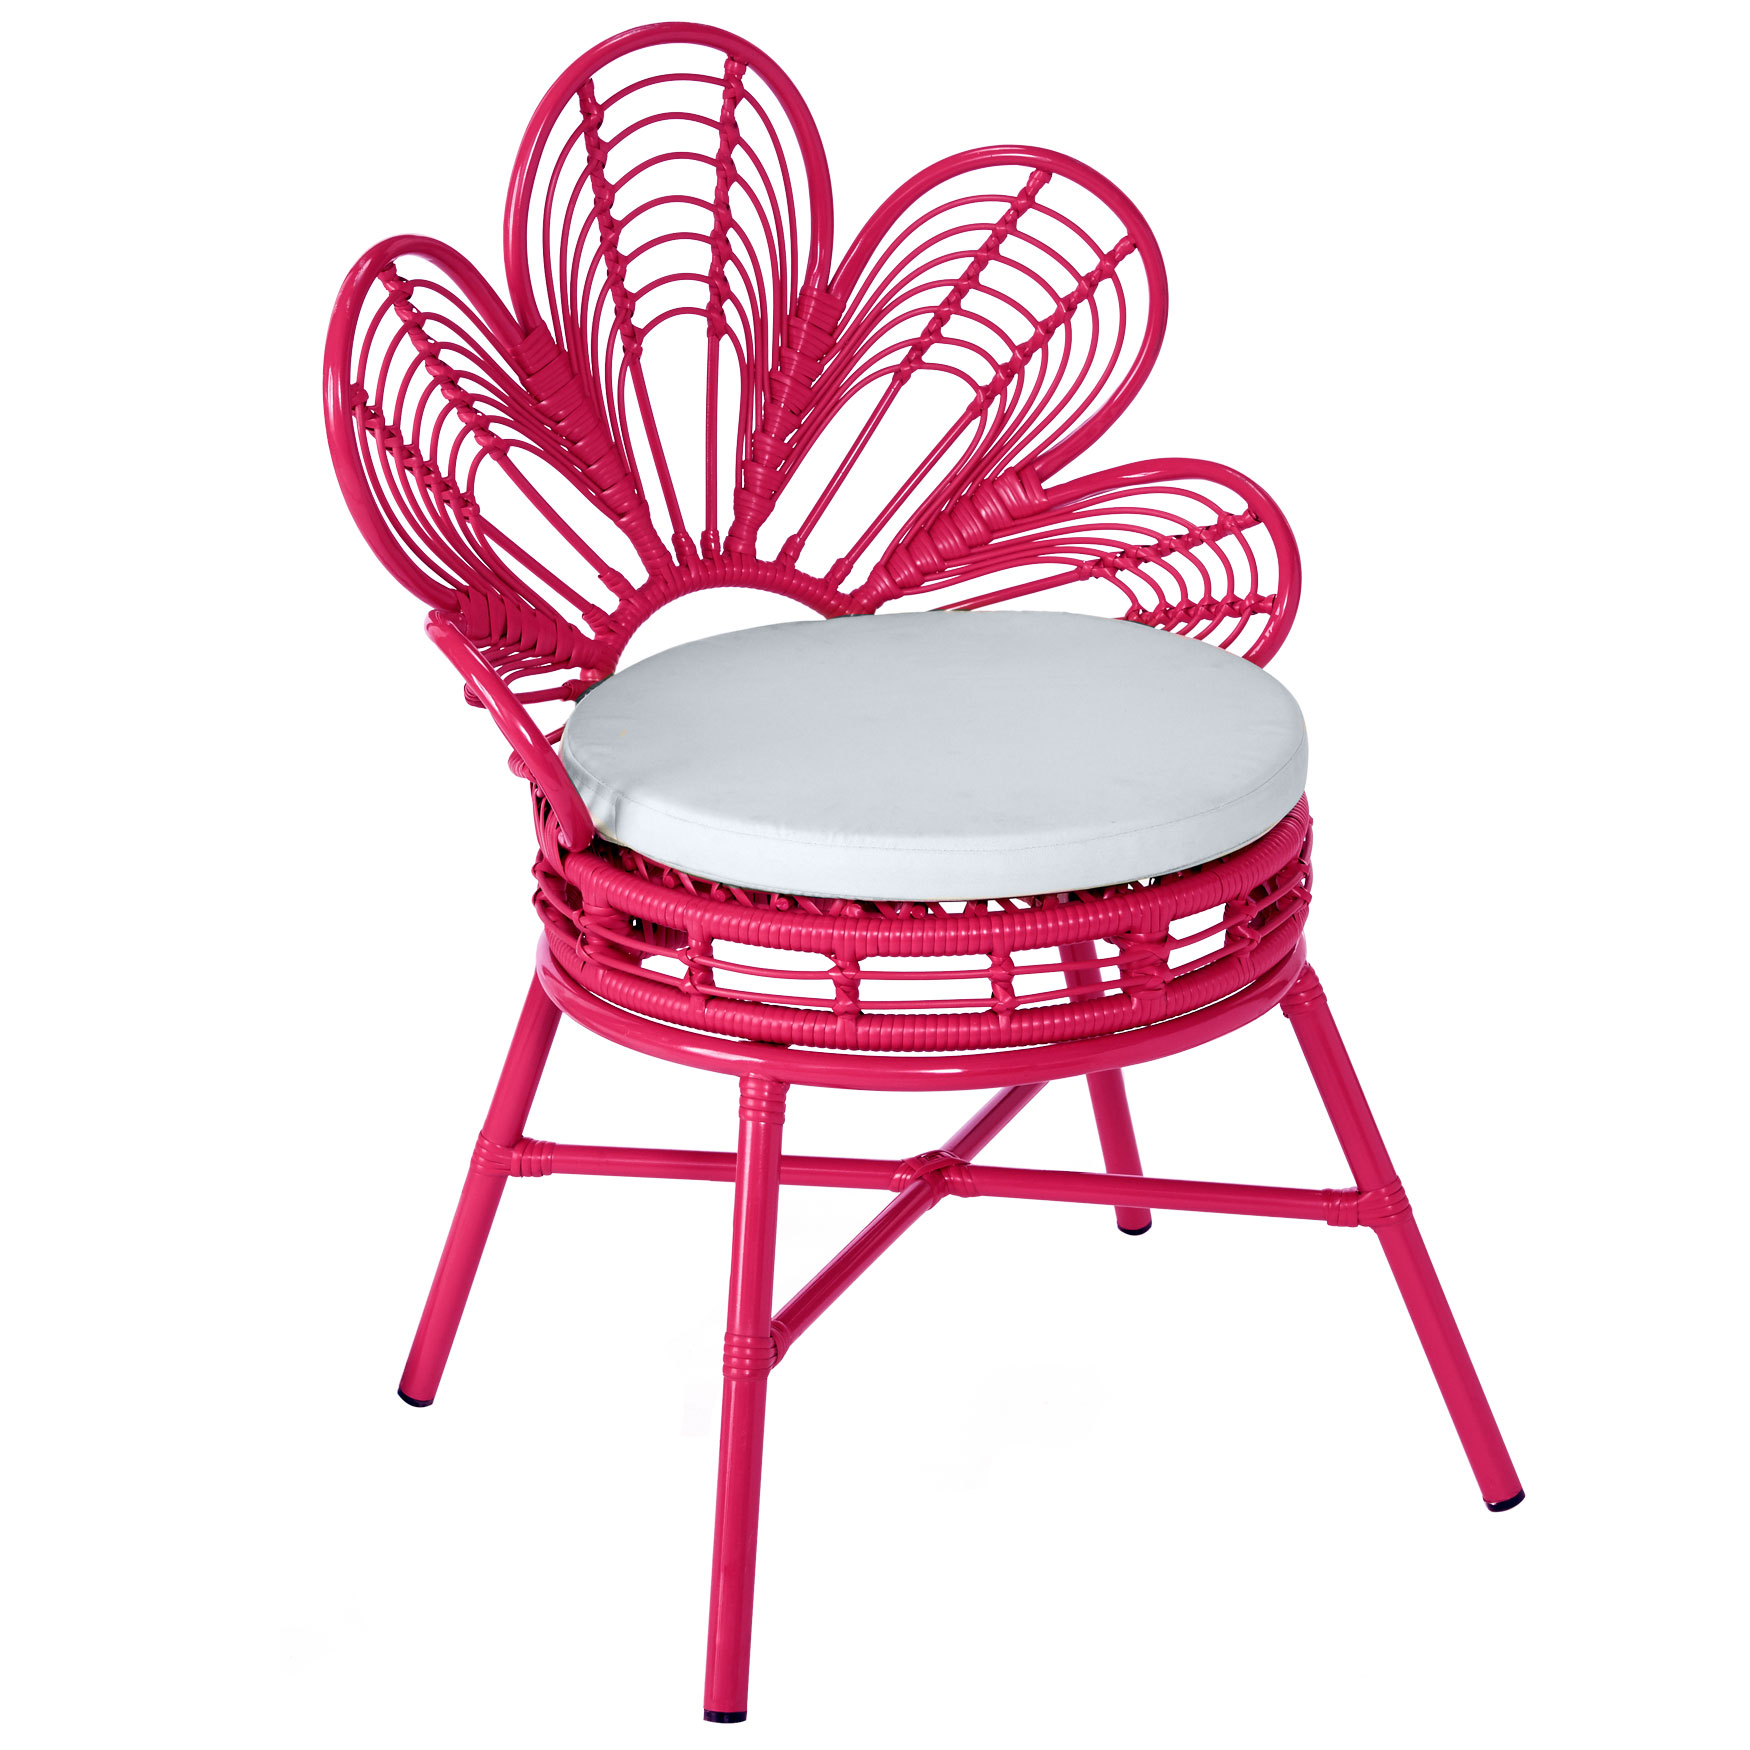 All-Weather Flower Chair, PINK